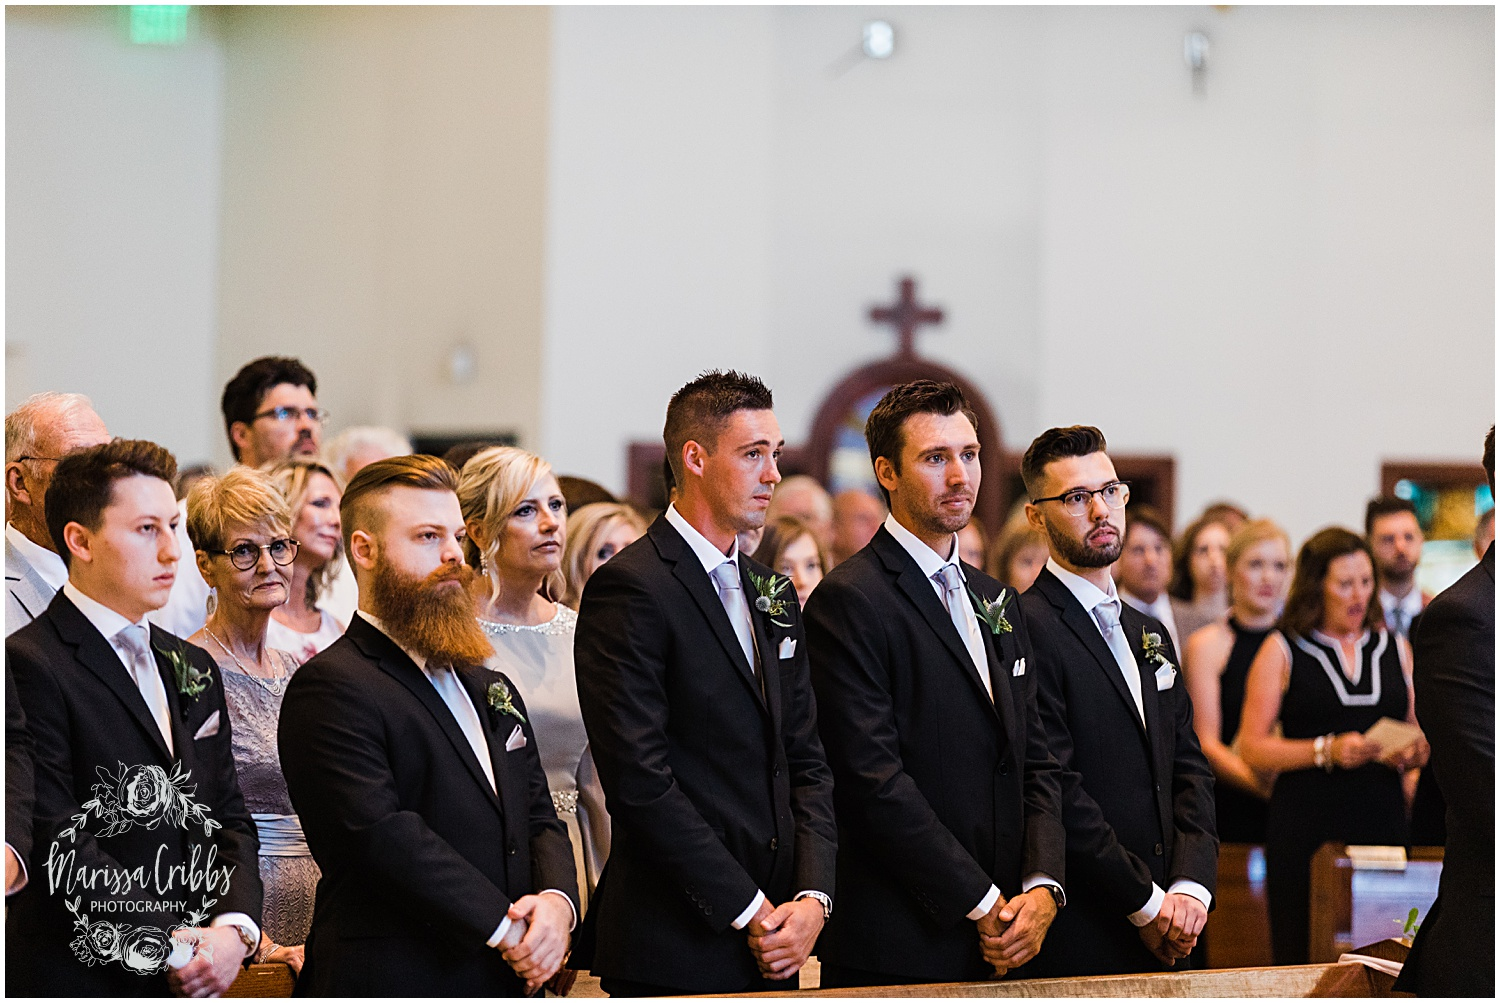 KELLY & MITCH MARRIED BLOG | MARISSA CRIBBS PHOTOGRAPHY | THE EVERLY EVENT SPACE_8837.jpg